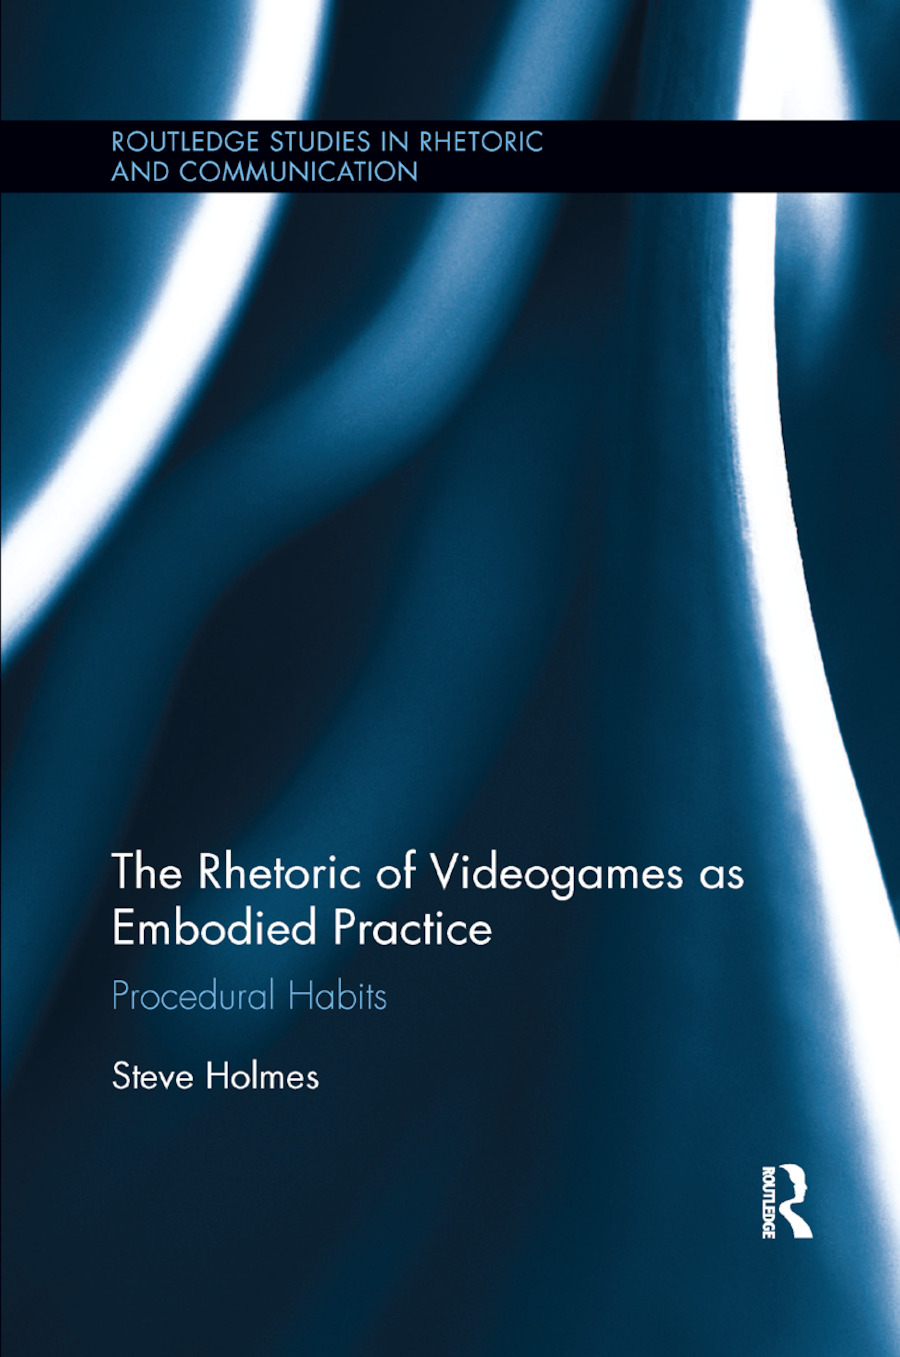 The Rhetoric of Videogames as Embodied Practice